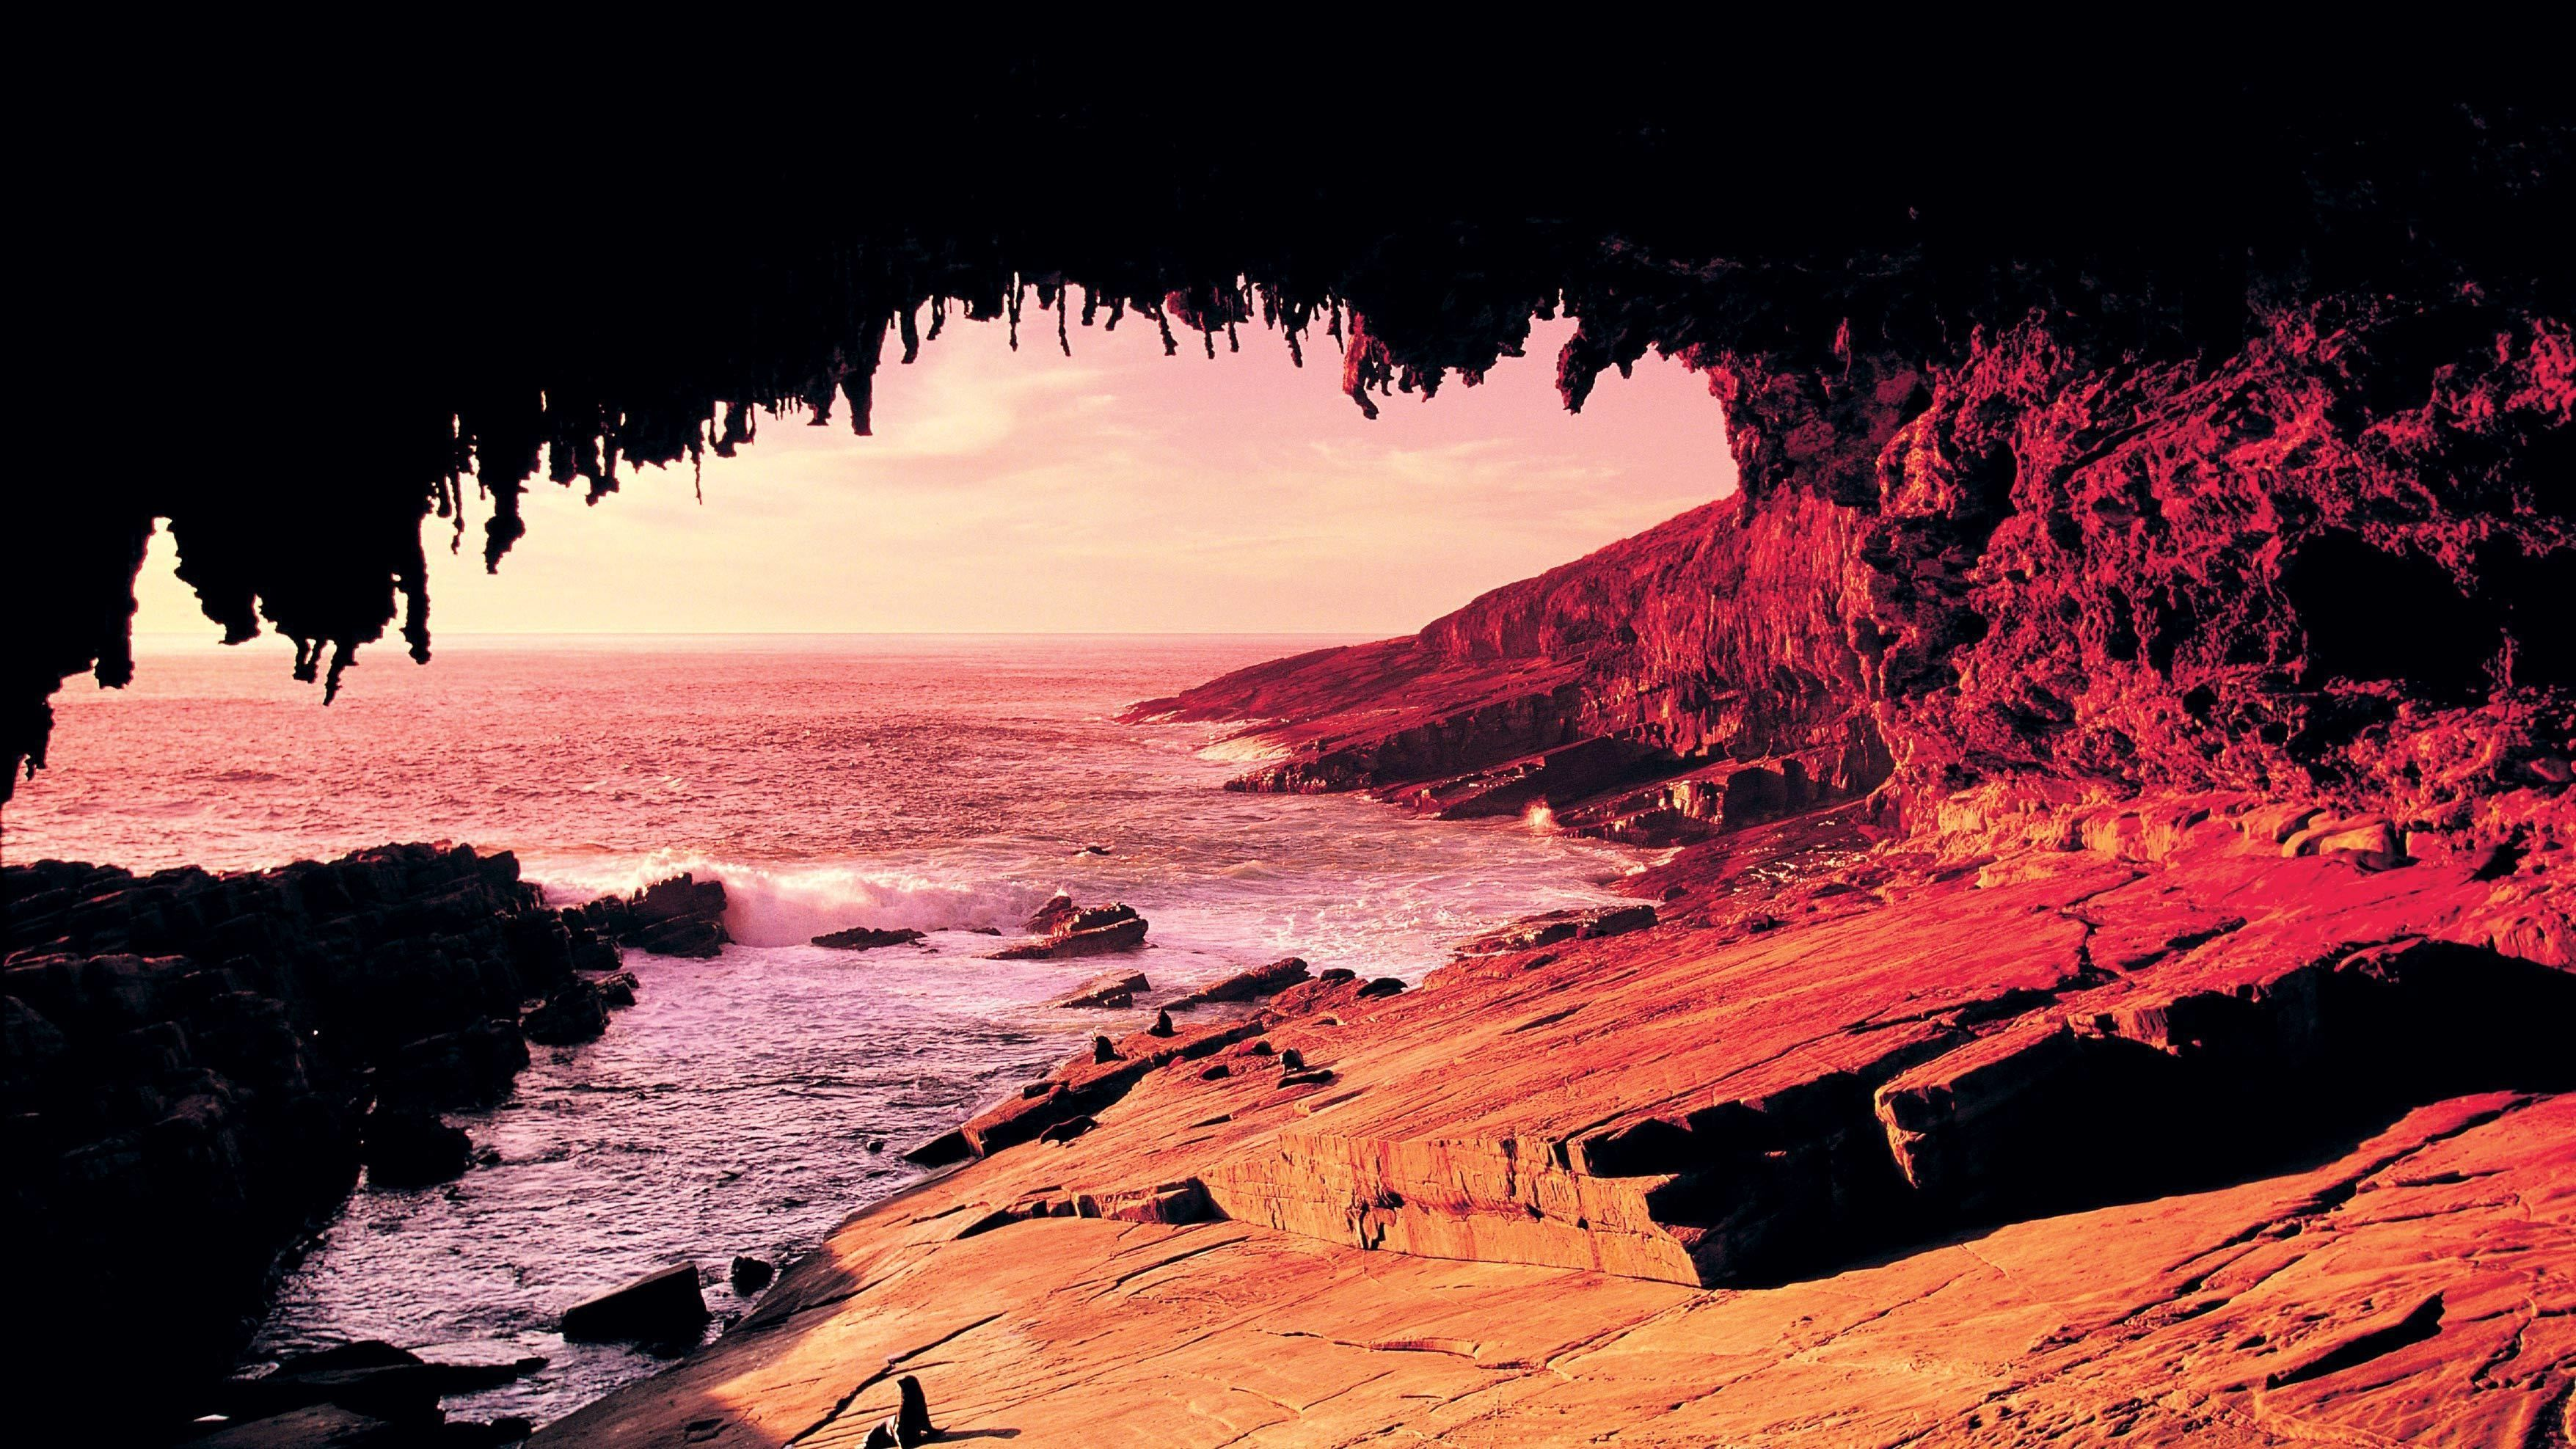 View of the coast of Kangaroo island from a cave at sunset